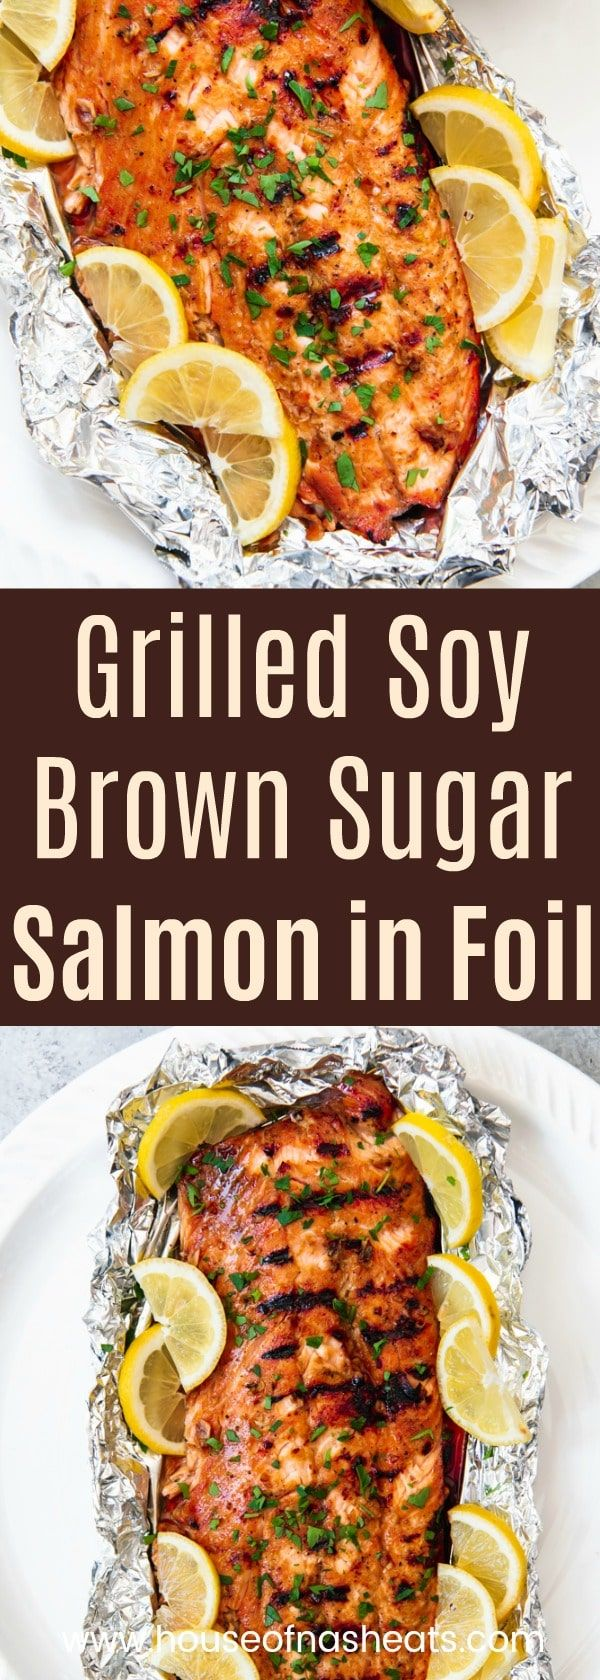 Photo of Grilled Soy Brown Sugar Salmon in Foil – House of Nash Eats